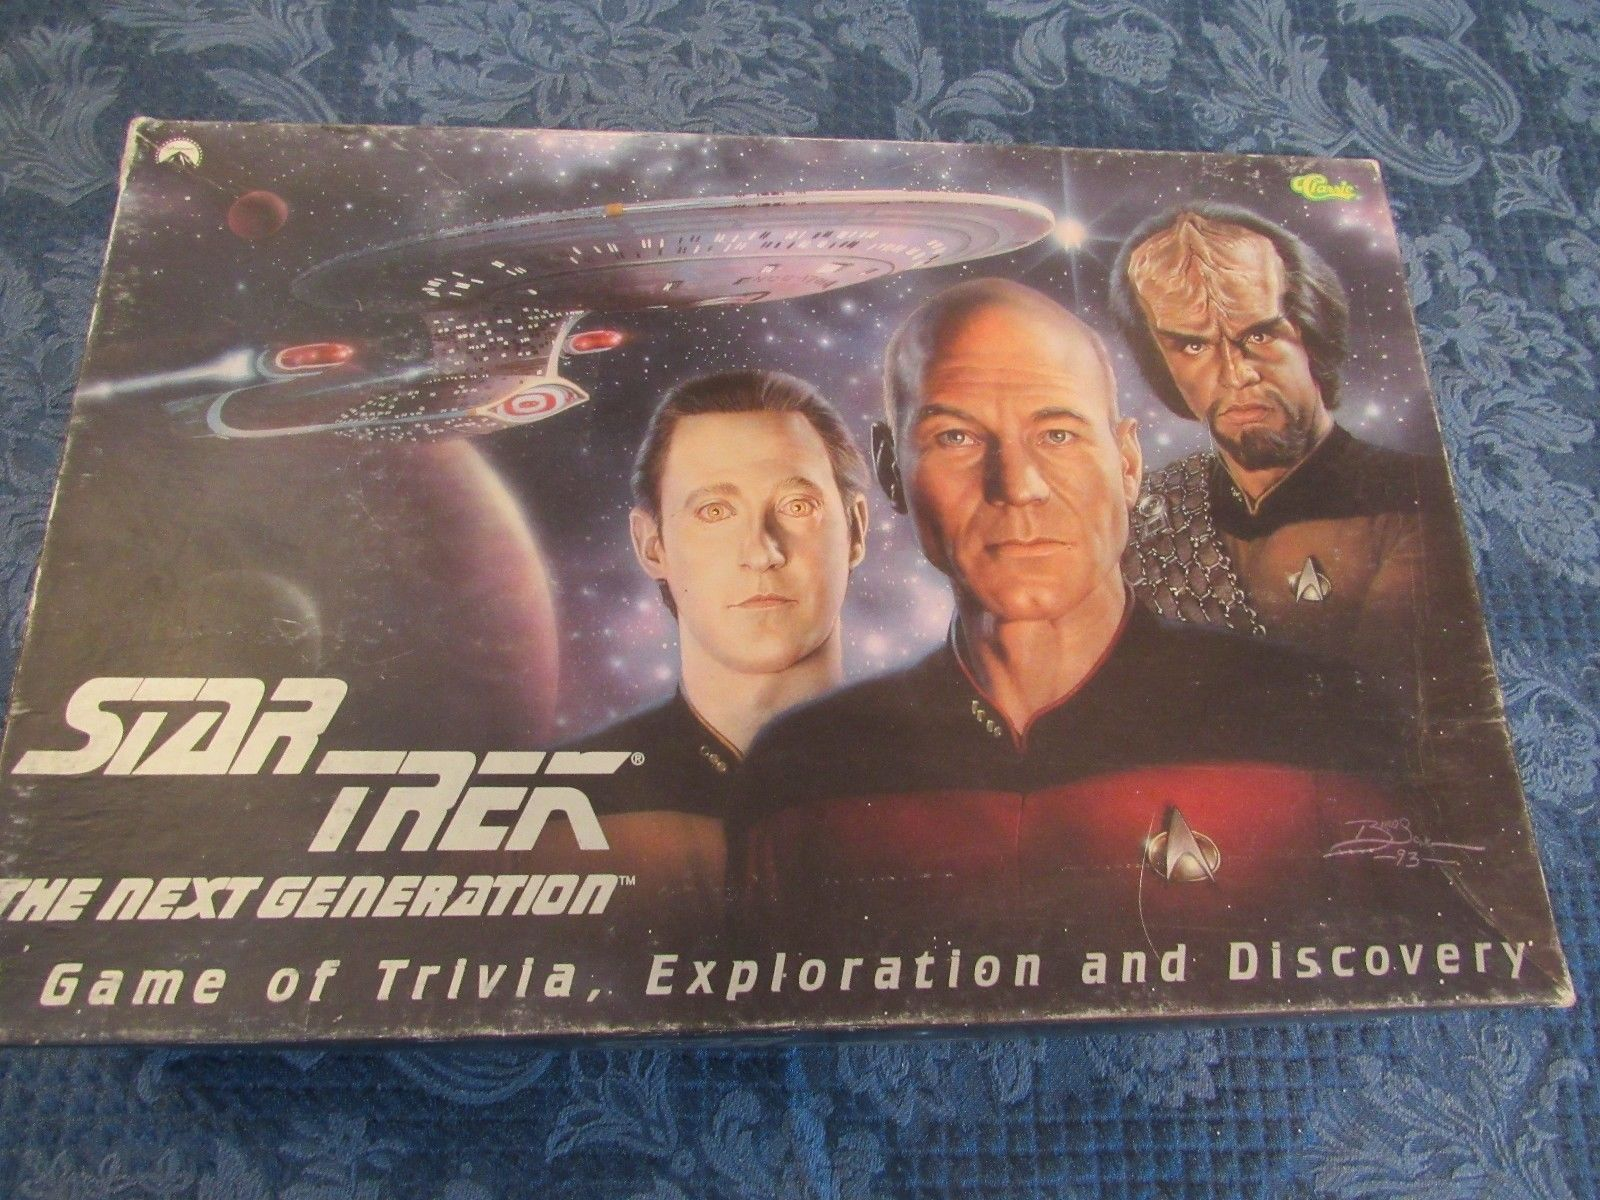 1993 Star Trek The Next Generation Trivia Board Game, Exploration & Discovery